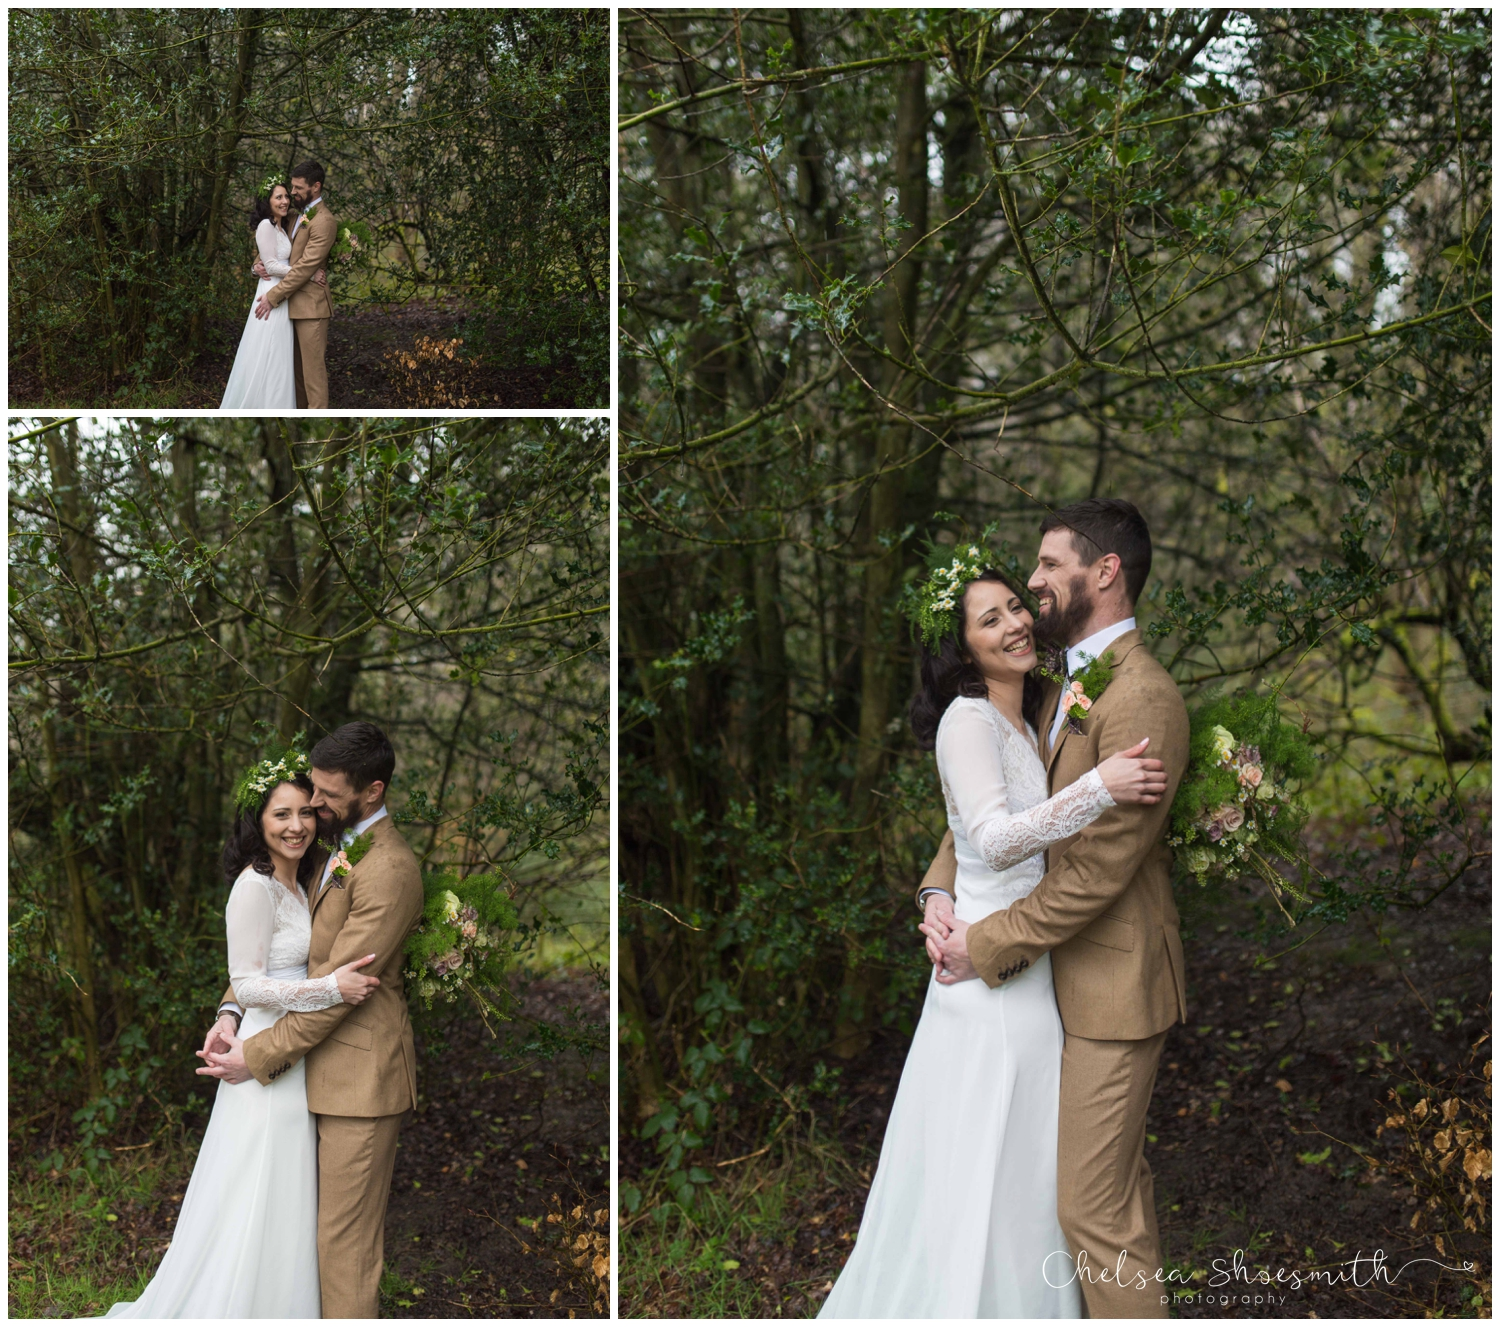 (73 of 183) Deya & Craig Bridal Styled Shoot Teggsnose country park macclesfield cheshire wedding photographer chelsea shoesmith photography_